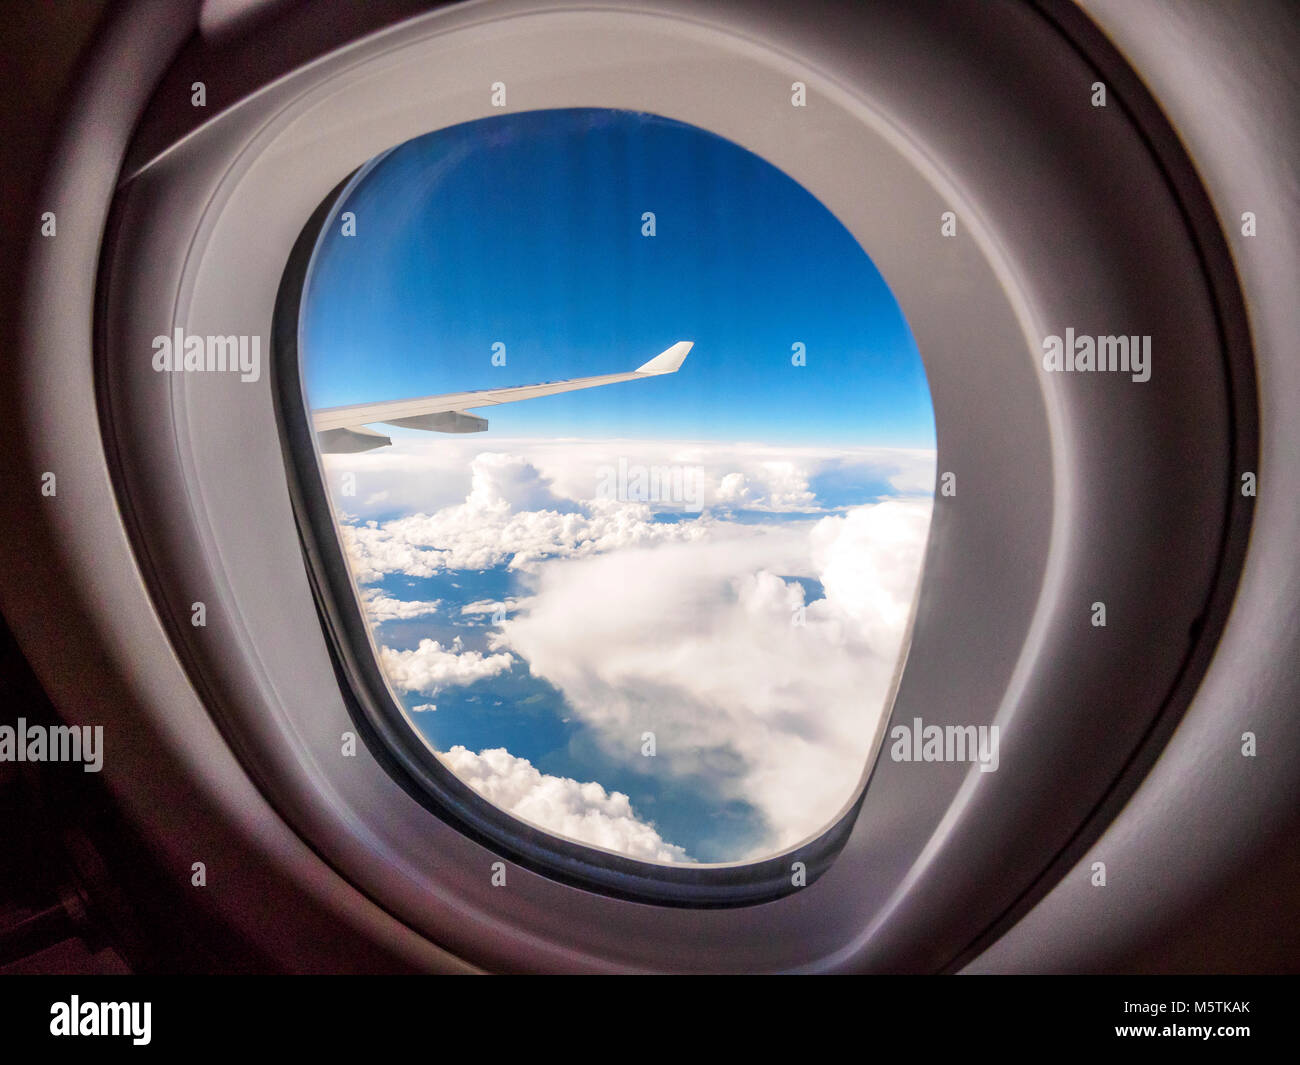 View through the porthole of aircraft. Stock Photo